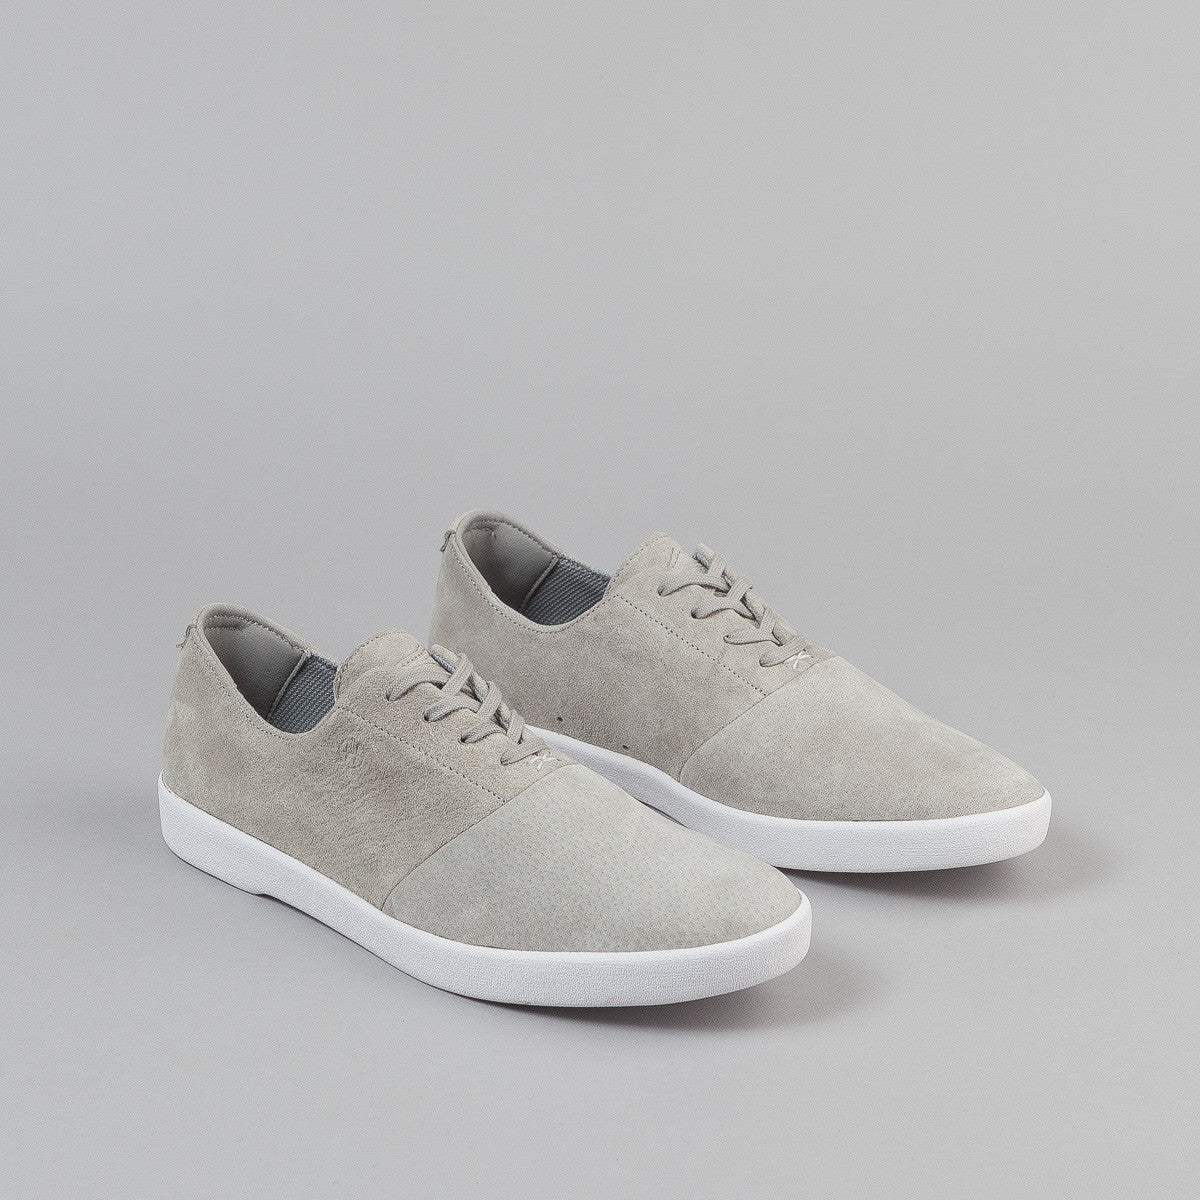 HUF Gillette Shoes - Light Grey